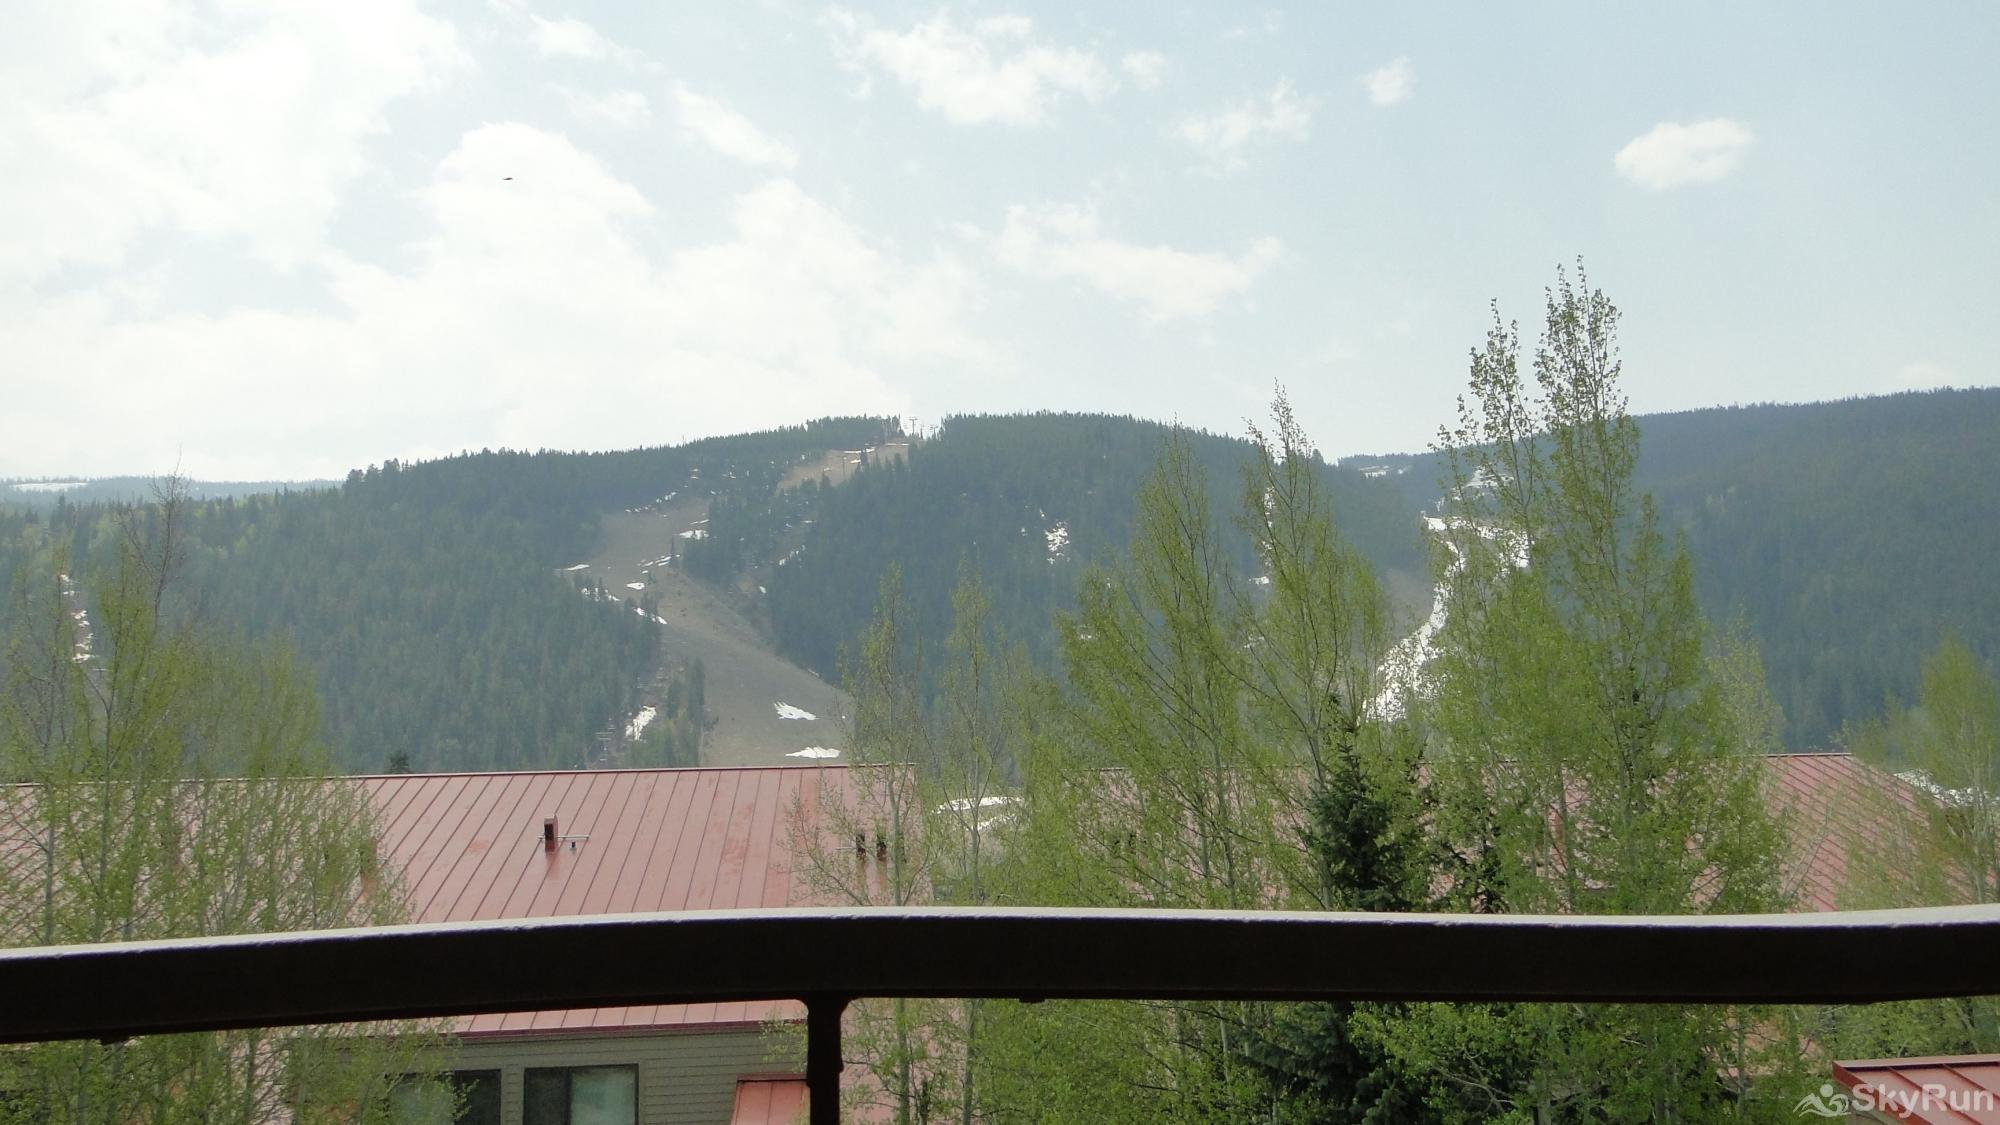 204 Ski Run Balcony View